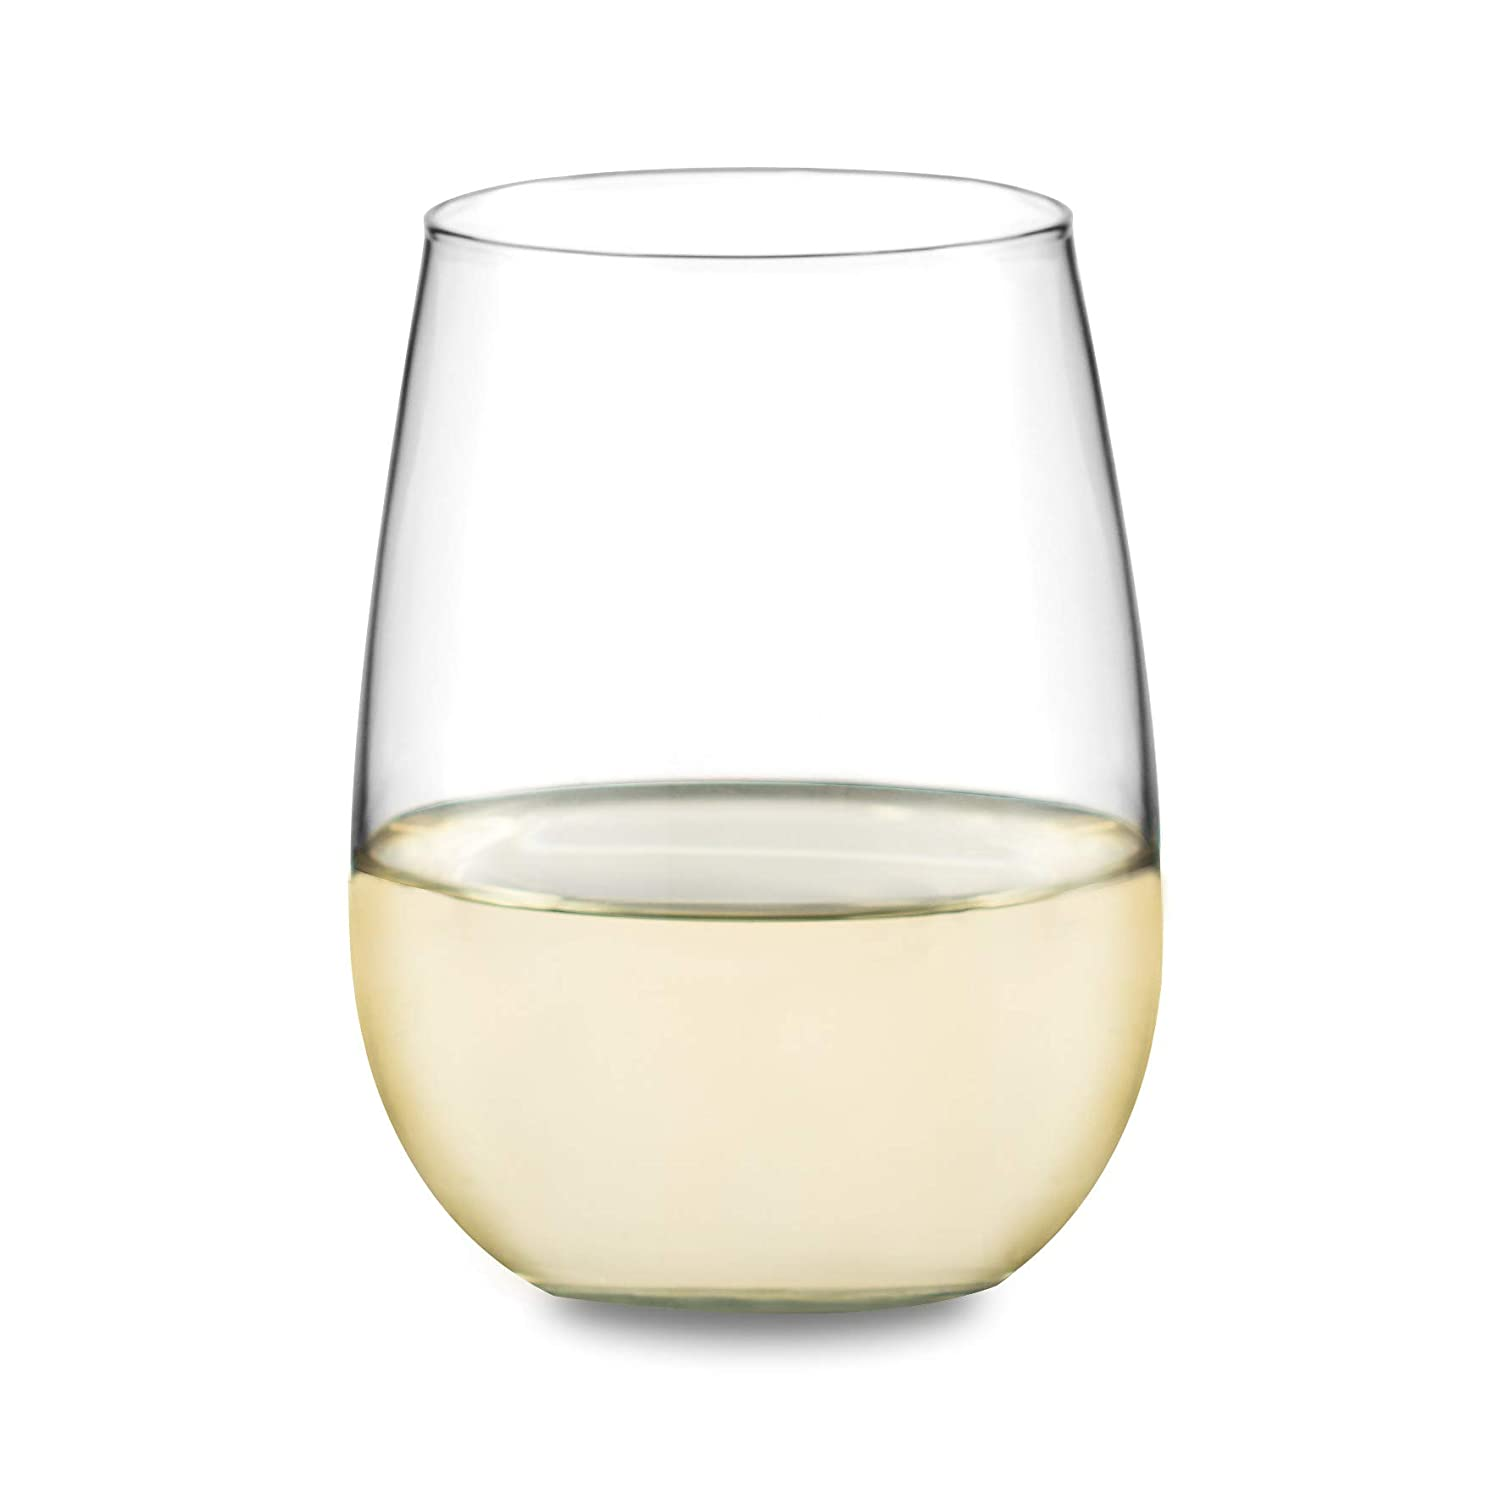 Libbey Vina 12-Piece Stemless Red and White Wine Glasses in Clear